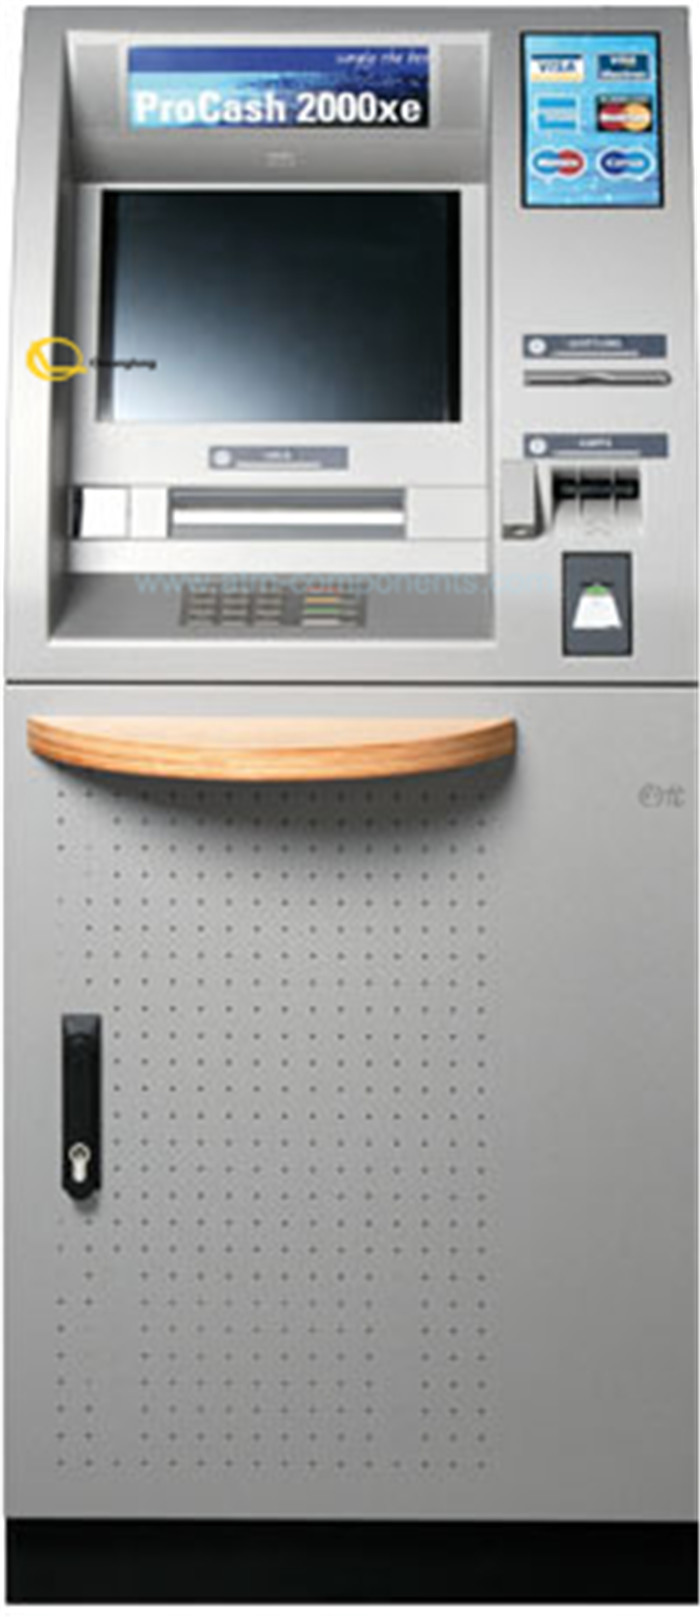 College / University ATM Cash Machine 2050 XE P / N Easy To Use Grey Color